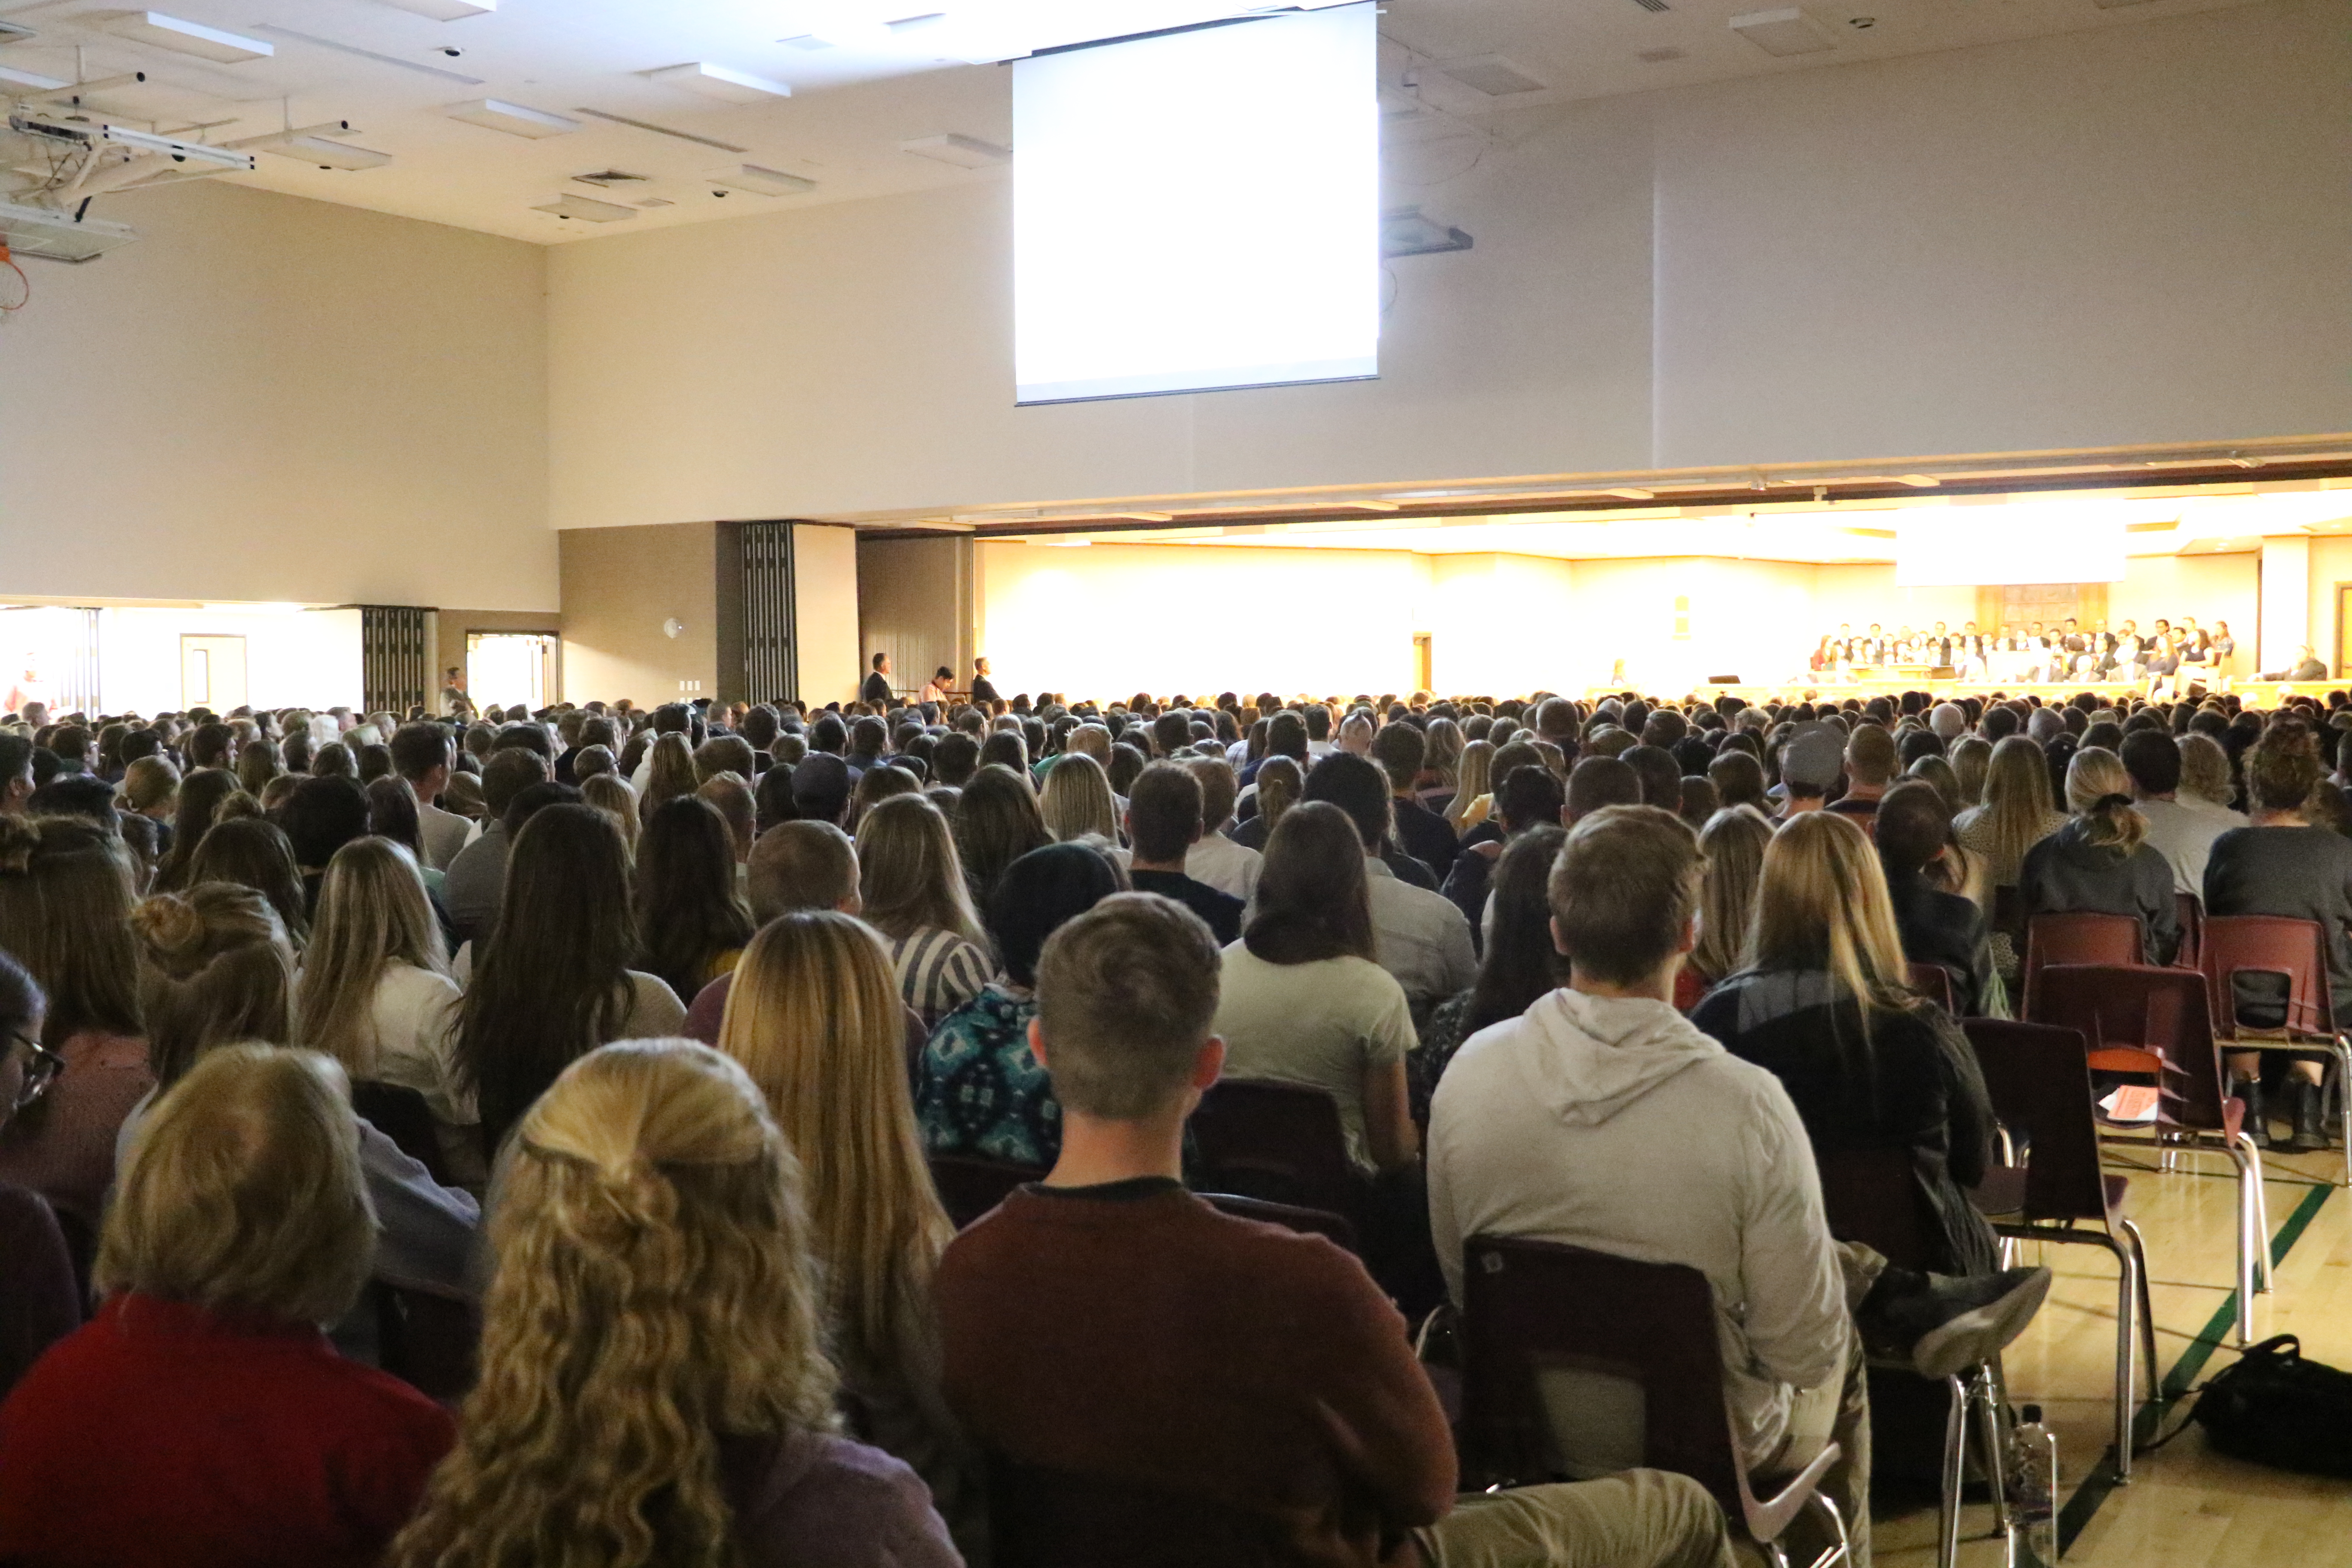 Students gather at the institute of religion on the UVU campus in Orem, Utah on Friday, Sept. 20, 2019 for a devotional with President M. Russell Ballard.